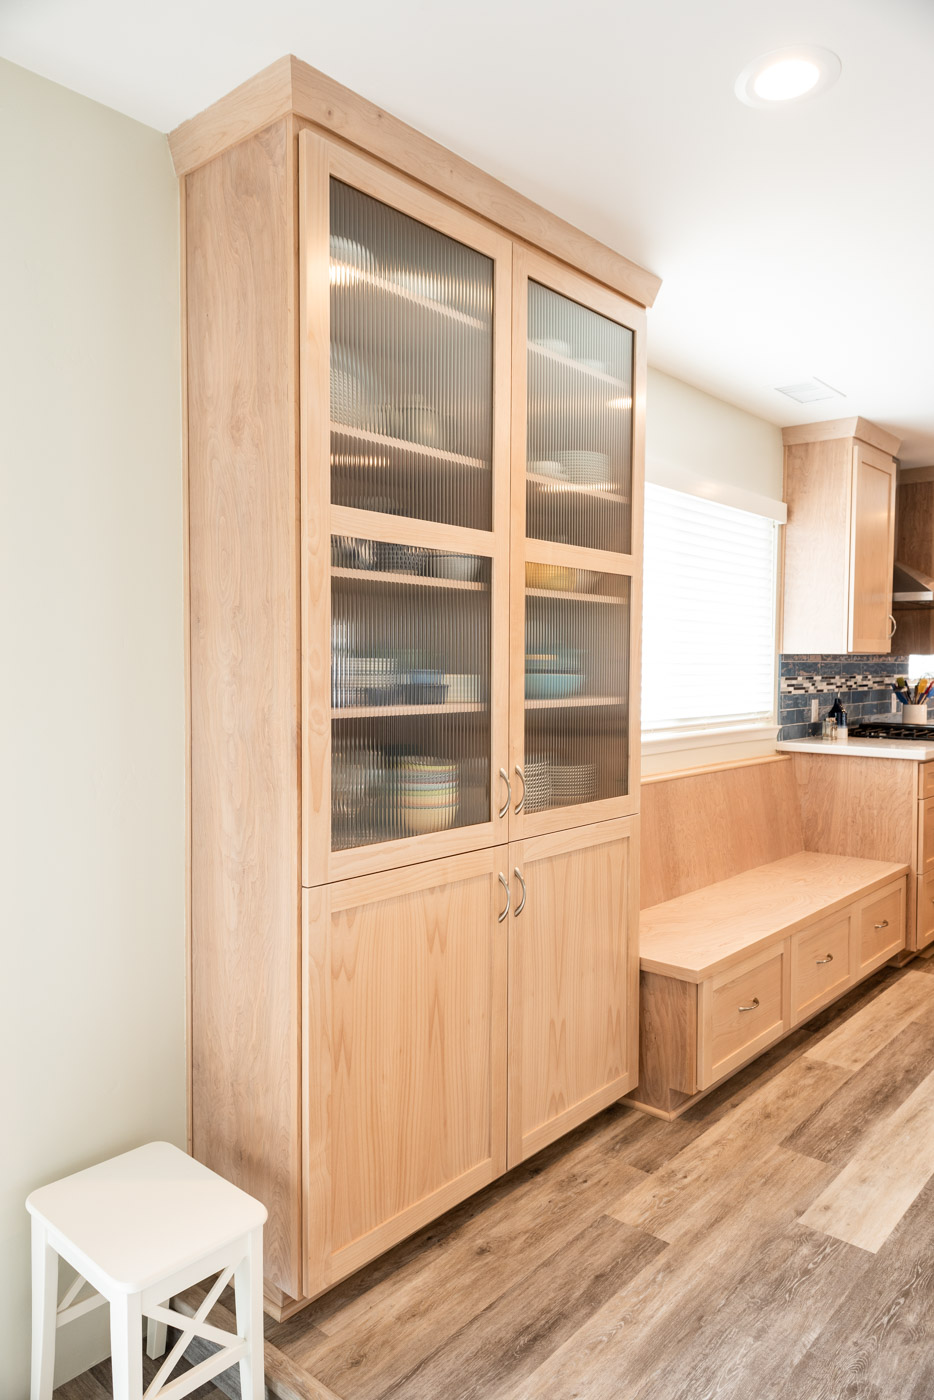 Coastal Contemporary custom kitchen cabinets with natural wood stain and glass display cabinet